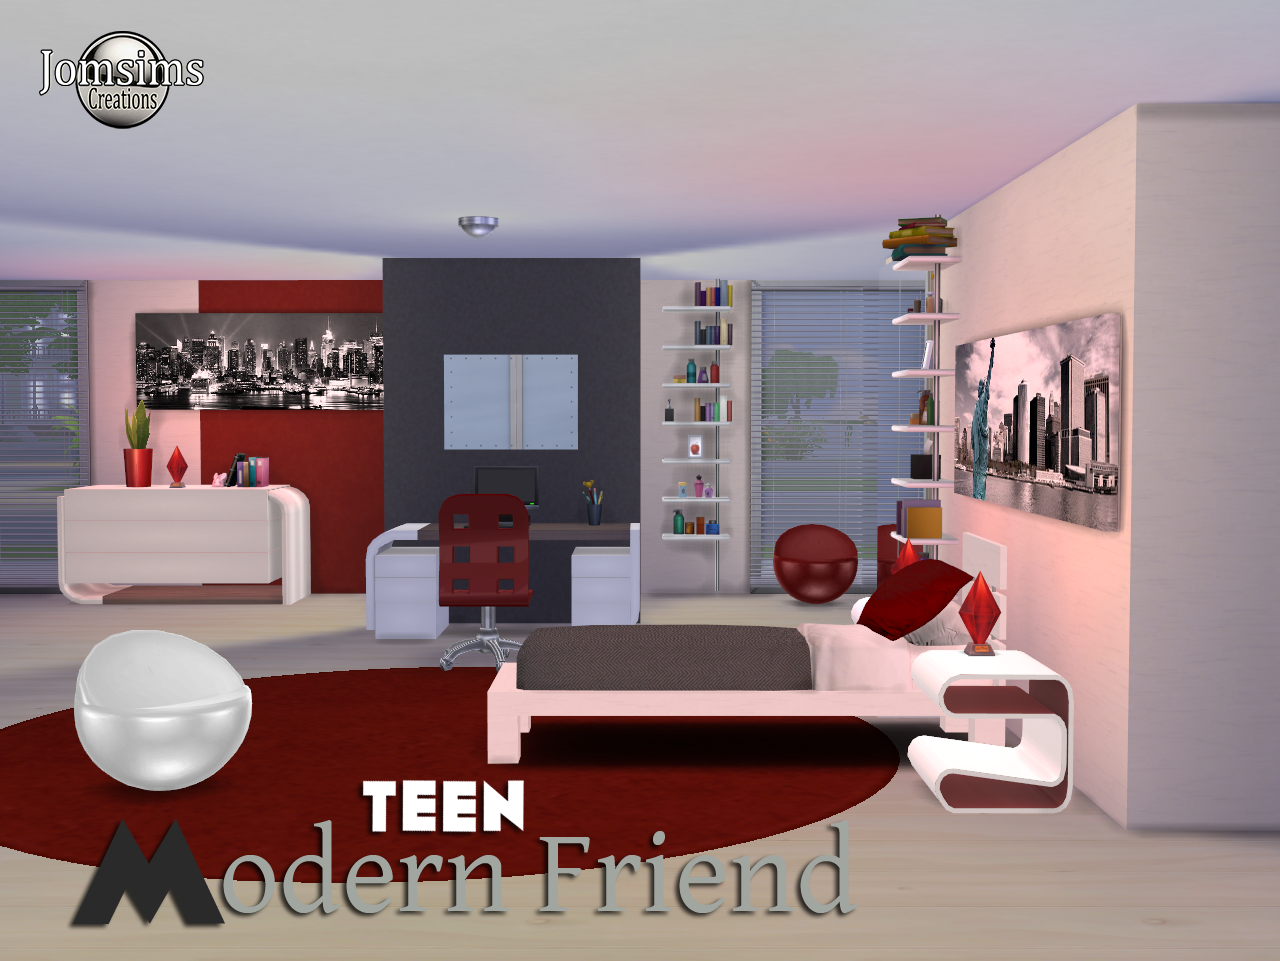 Elegant Modern Friend Teen Bedroom Set By Jomsims The Sims Mod With Teen  Bedroom Sets